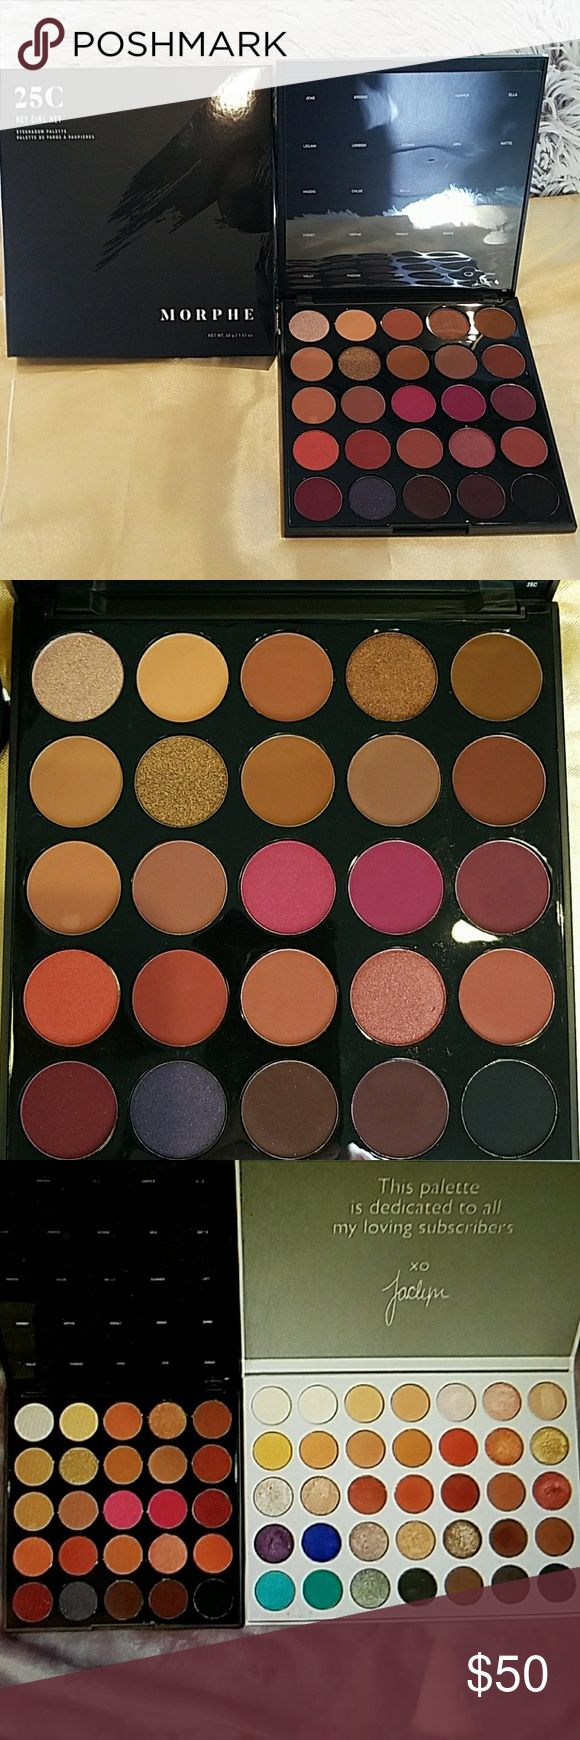 """Morphe 25C """"Hey Girl Hey Palette"""" BRAND NEW ONLY AVAILABLE IN THE STORE and NOT ONLINE and """"hey girl"""" is she a beauty! Buttery texture with the payout and quality the brand is known for - shades of gold,  pink,  brown,  orange a glittery purple and a matte black. Not well known because of limited availability you will be the envy of other make up lovers. This palette is amazing with a capital A! Shown next to Jaclyn Hill and 24G for size comparison. Morphe Makeup Eyeshadow"""